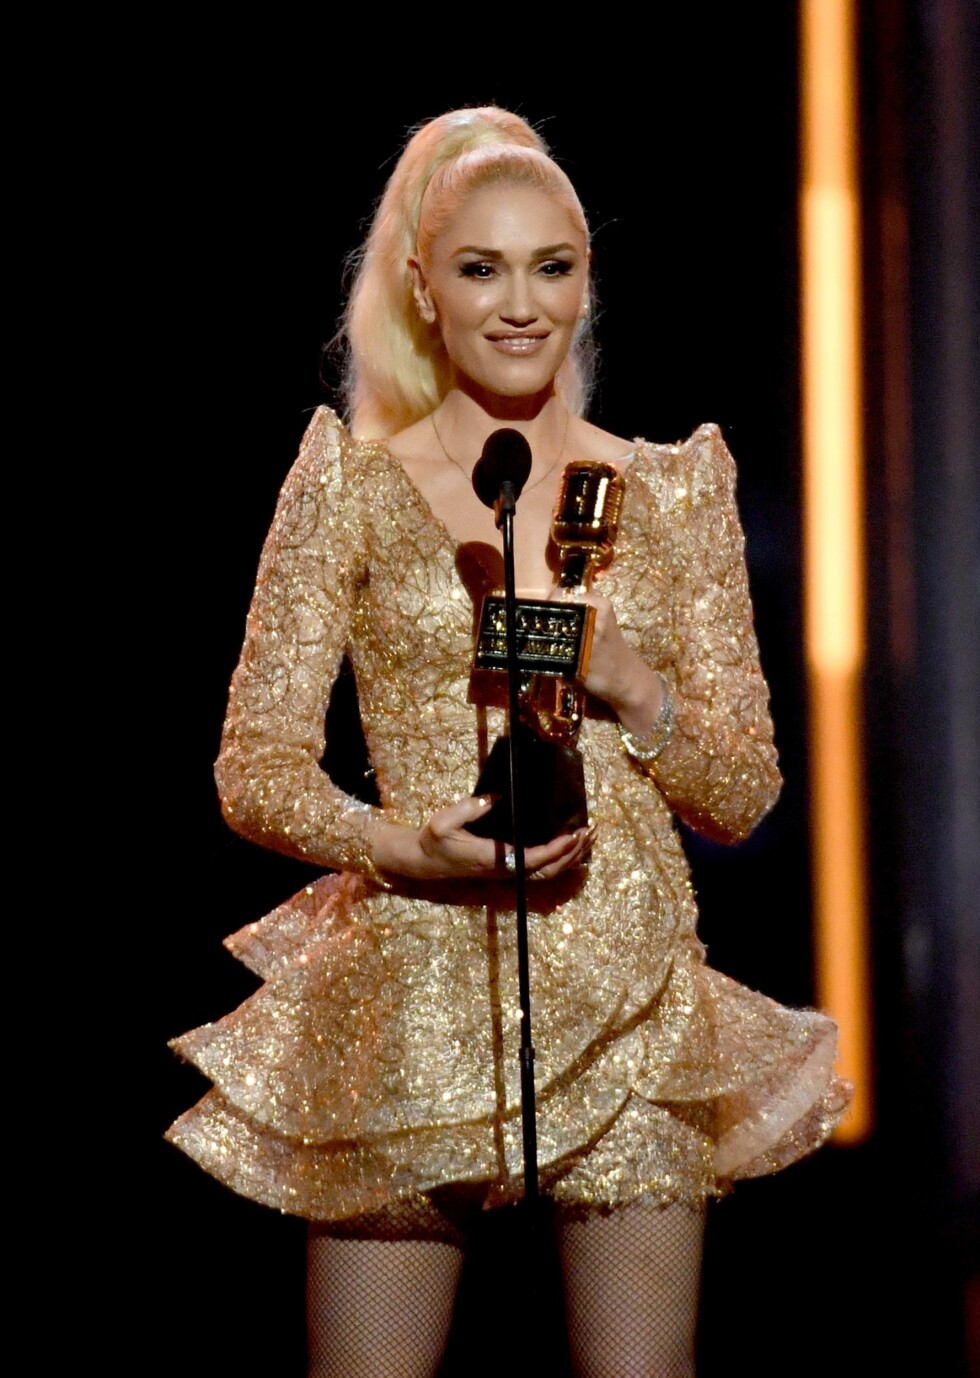 Gwen Stefani holder tale på Billboard Music Awards Show i 2017. Foto: NTB Scanpix